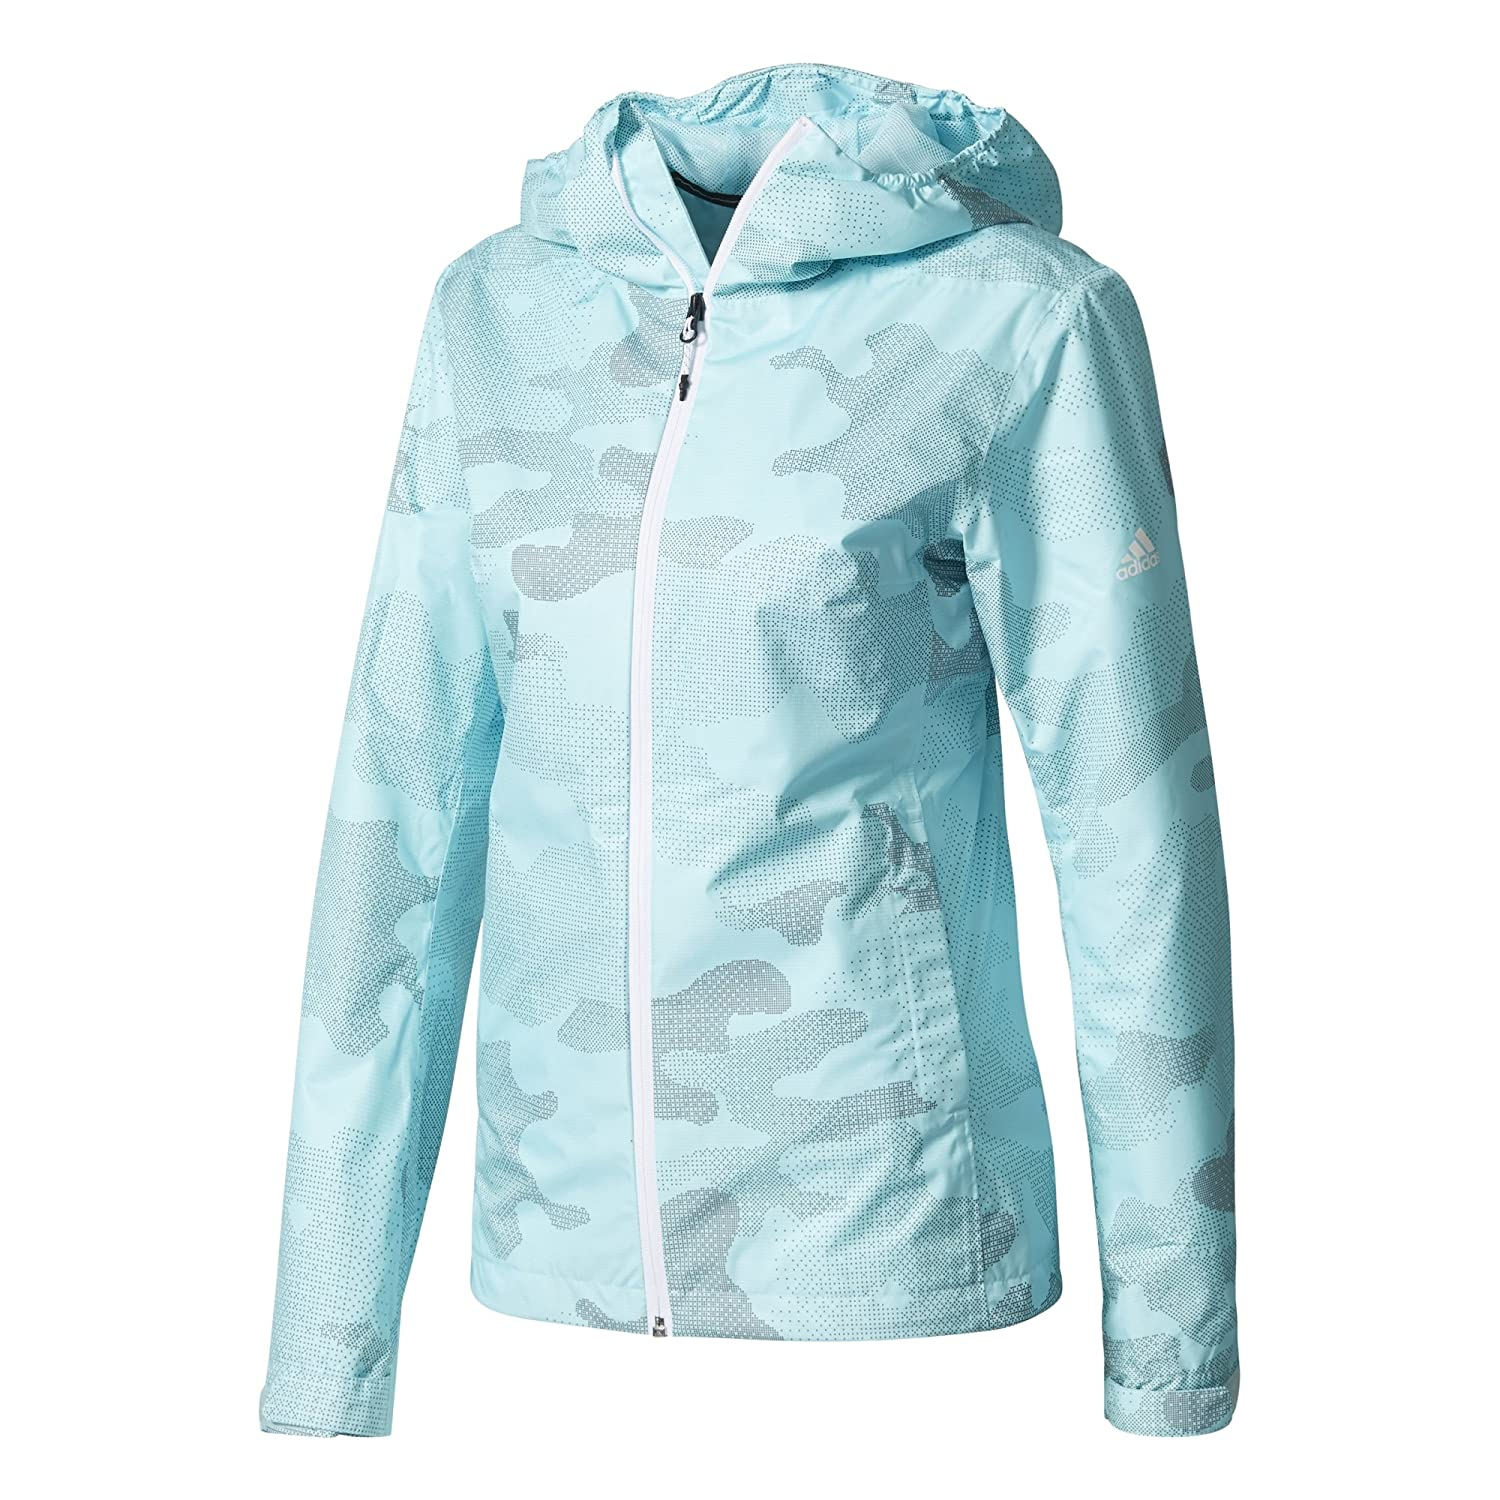 Adidas Damen All Outdoor Printed Wandertag Jacke